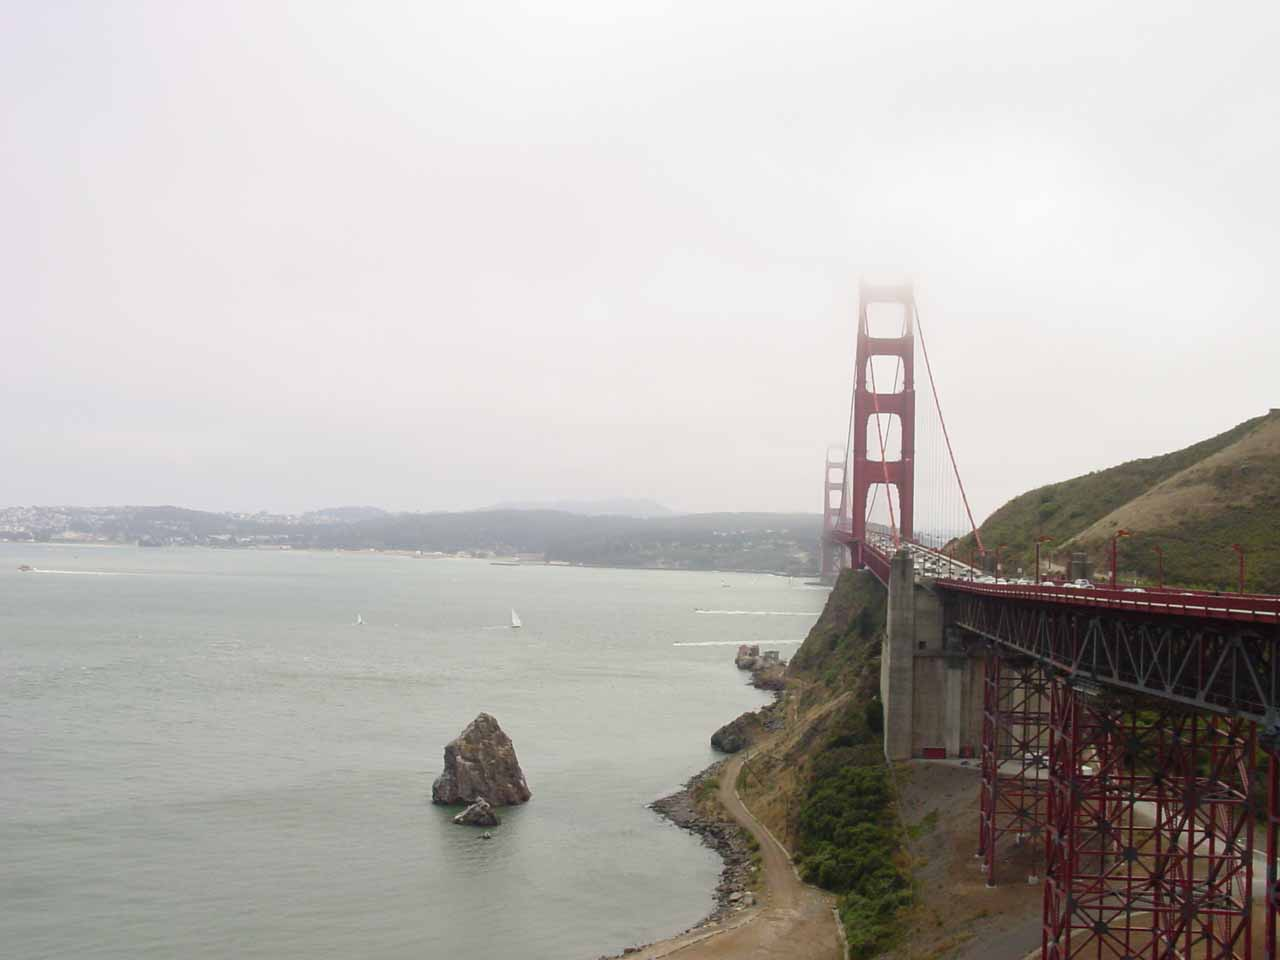 Going to Larkspur from San Francisco meant driving across the iconic Golden Gate Bridge. The Tamalpais Drive exit was roughly 8 miles north of this bridge